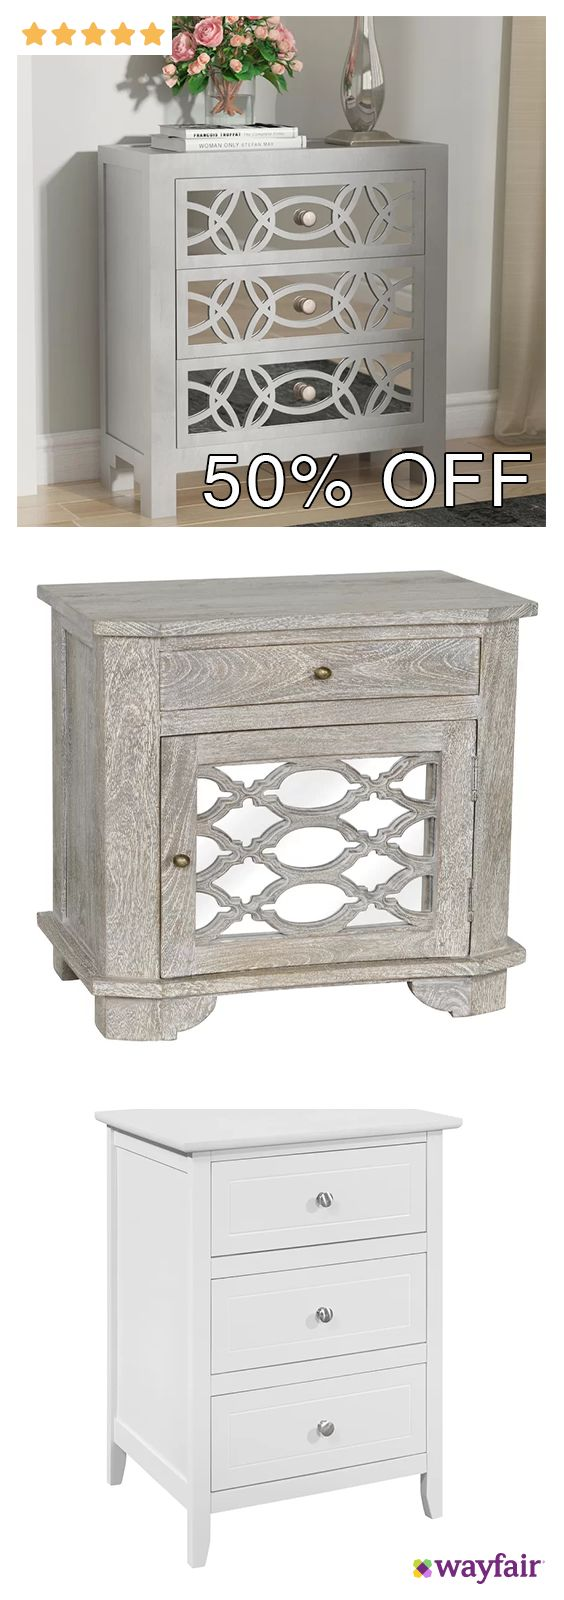 The eclectic appeal of this 1 Drawer Nightstand is portrayed by its hand-carved geometric pattern and clean lines outlining the piece. The mirror doors add a glamorous touch to this transitional and versatile nightstand. Best showcased with a complementary upholstered bed, this nightstand is bound to uplift the beauty any bedroom decor. | room home decor ideas kitchen bathroom bedroom furnishings furniture rug flooring garden pictures plants bath bed dining light lighting rugs...